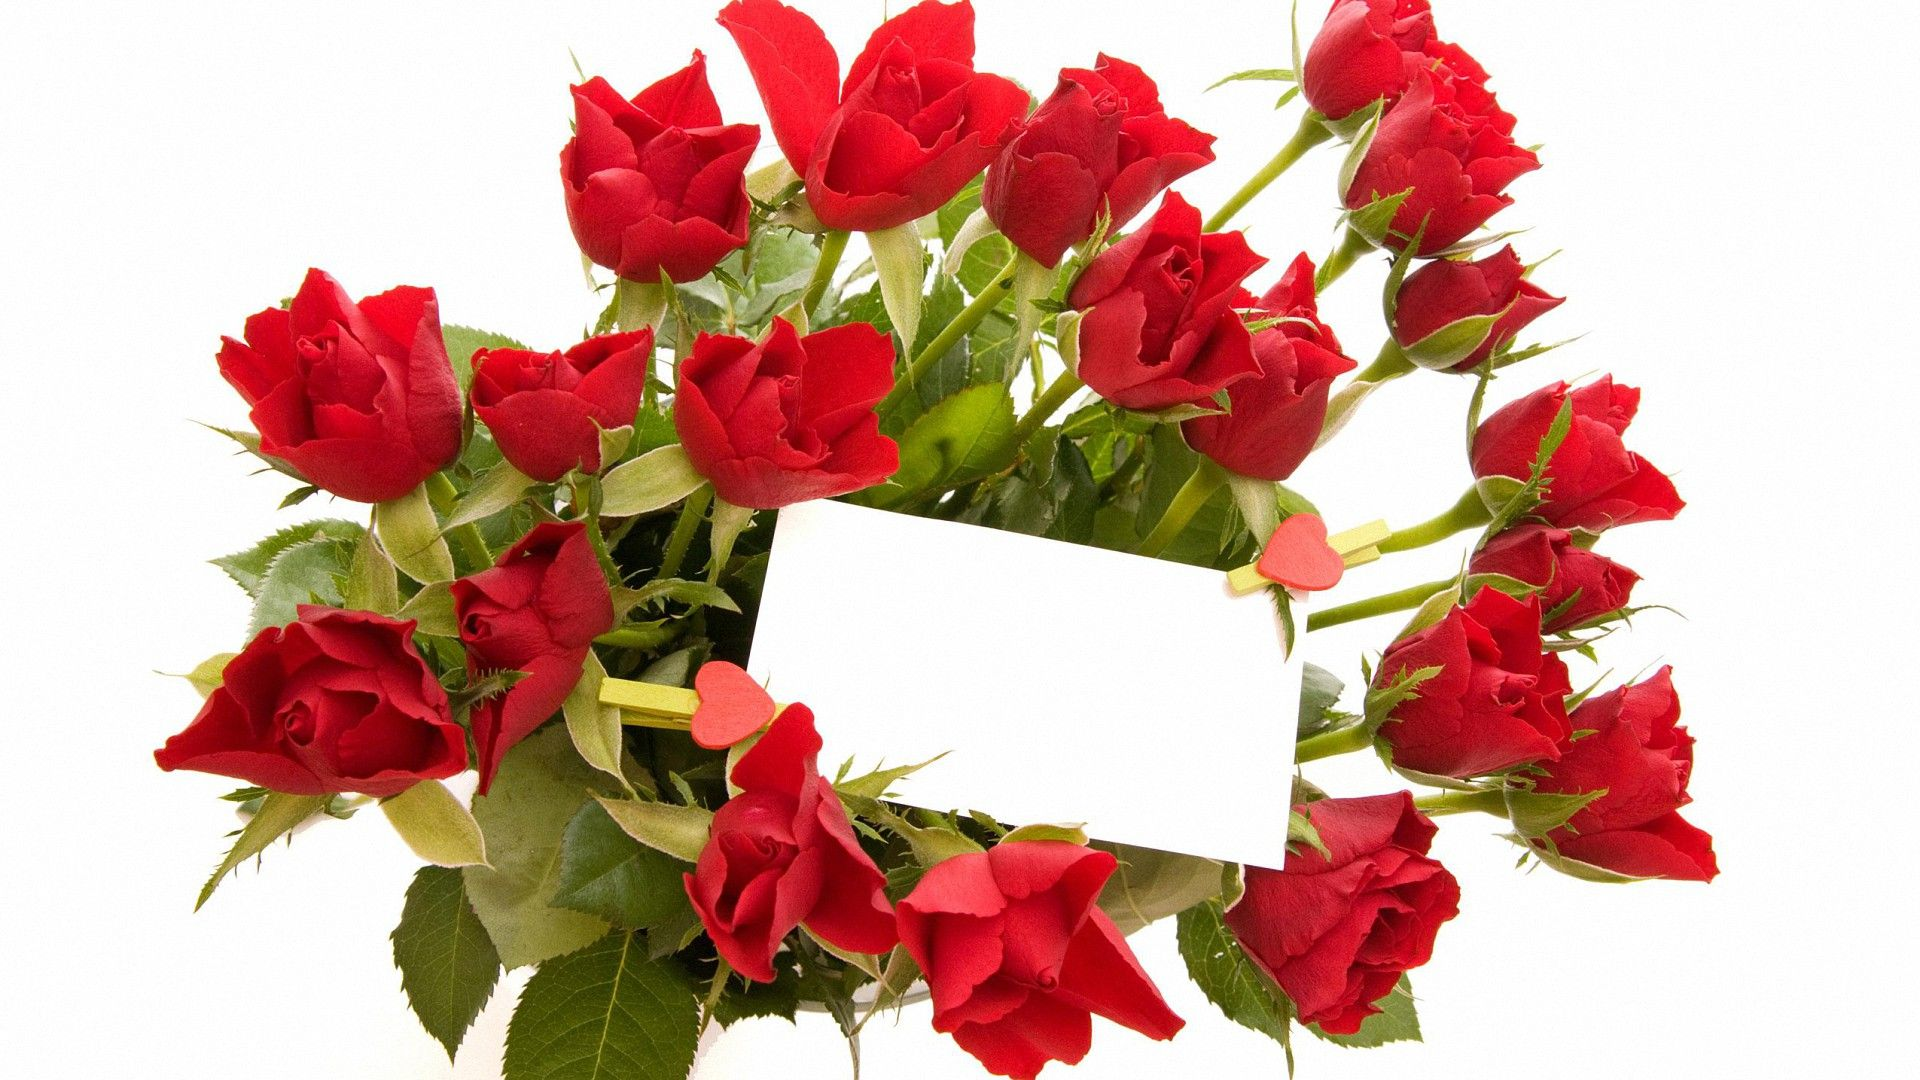 Sweet Valentines Day Rose Hd Wallpapers Valentines Day Wallpapers